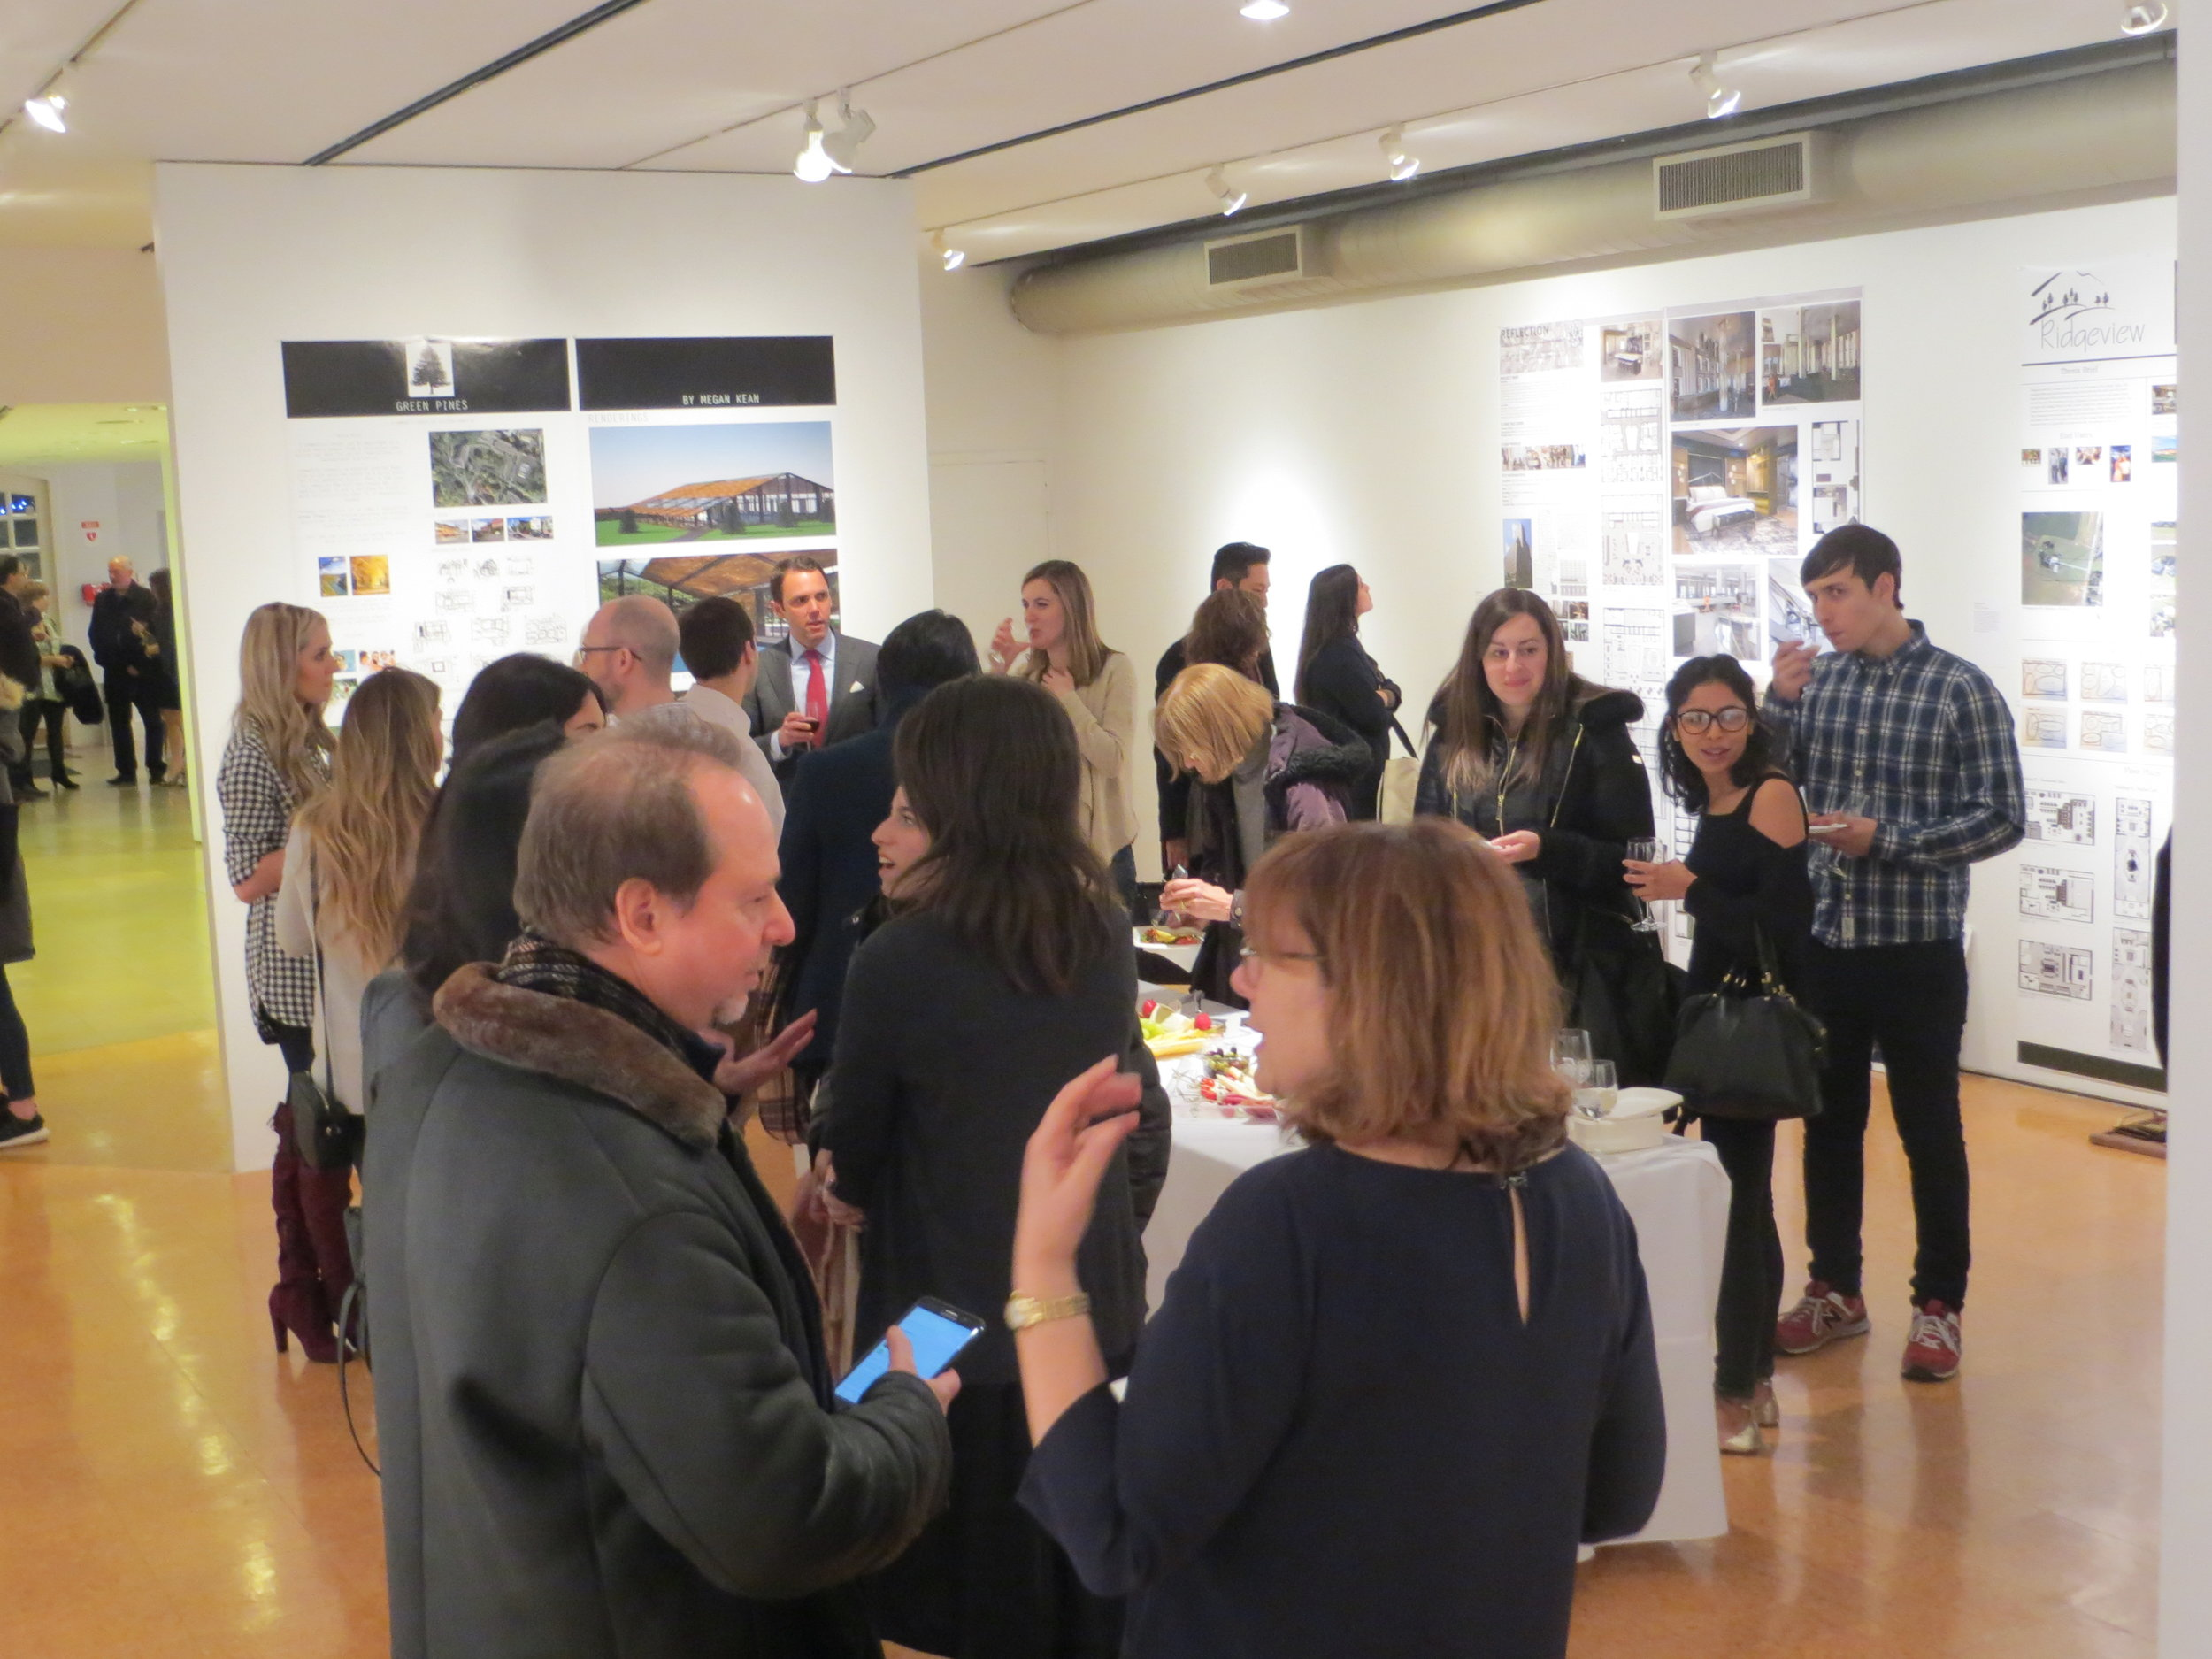 bfa-2017-winter-thesis-projects-exhibition_32753250515_o.jpg